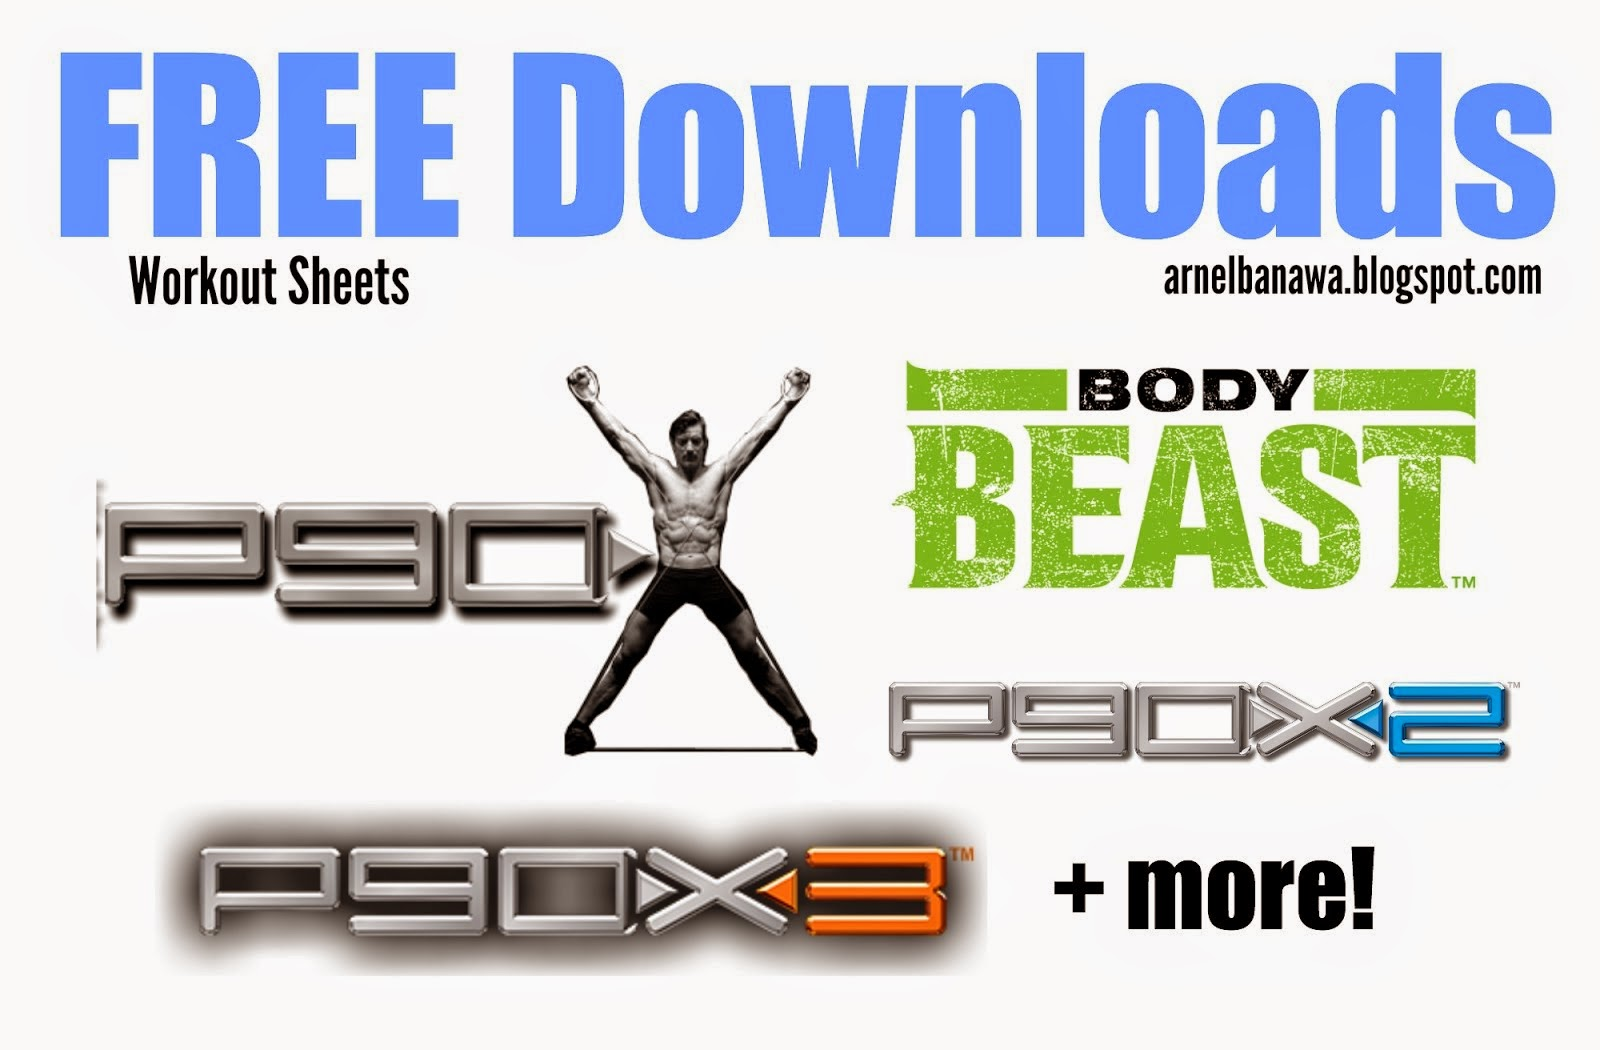 FREE DOWNLOADS - CLICK HERE!